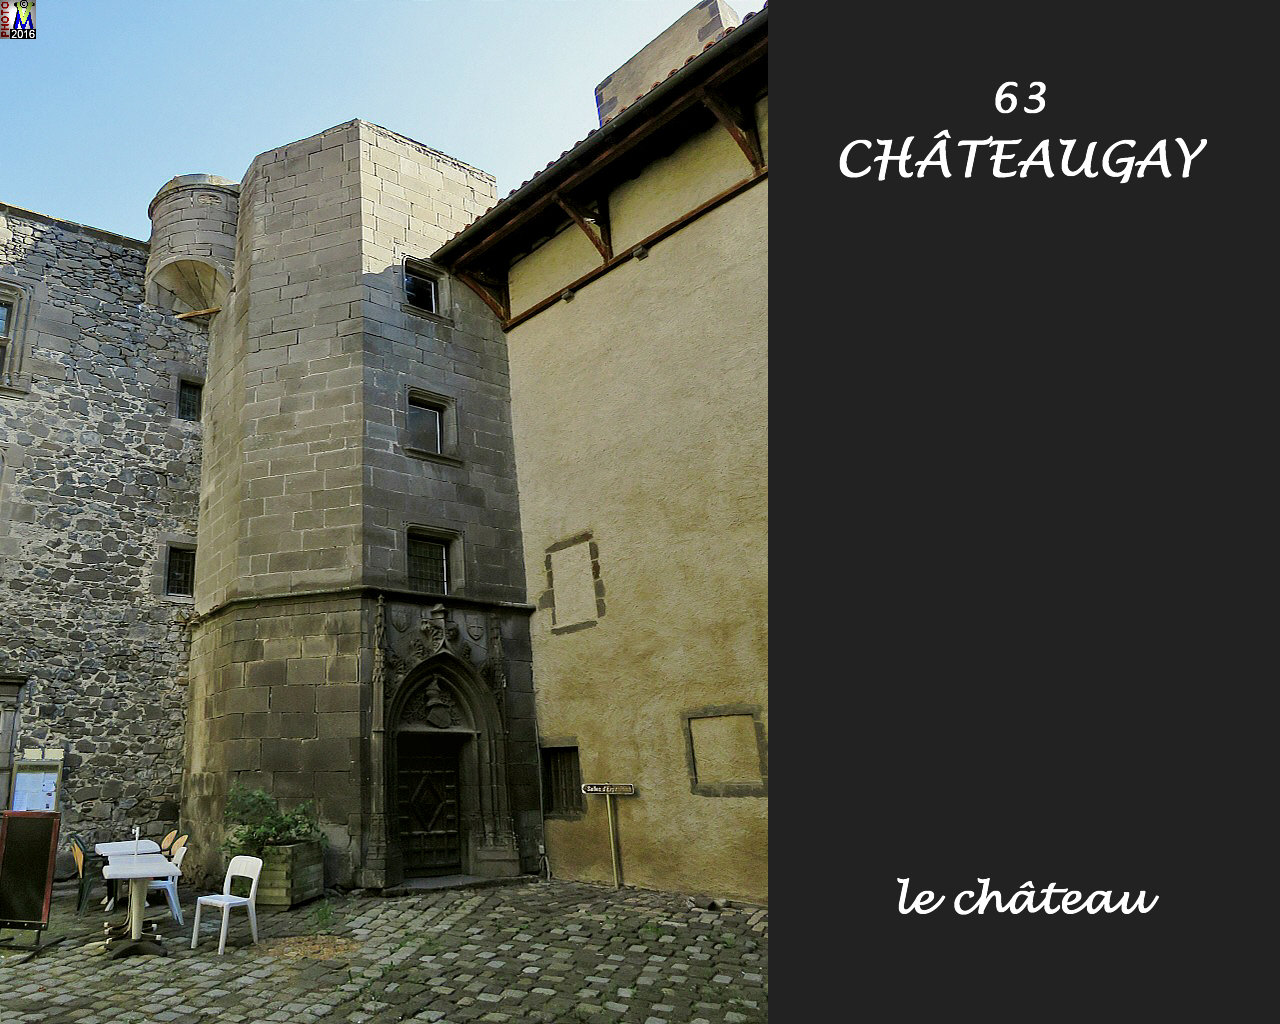 63CHATEAUGAY_chateau_110.jpg